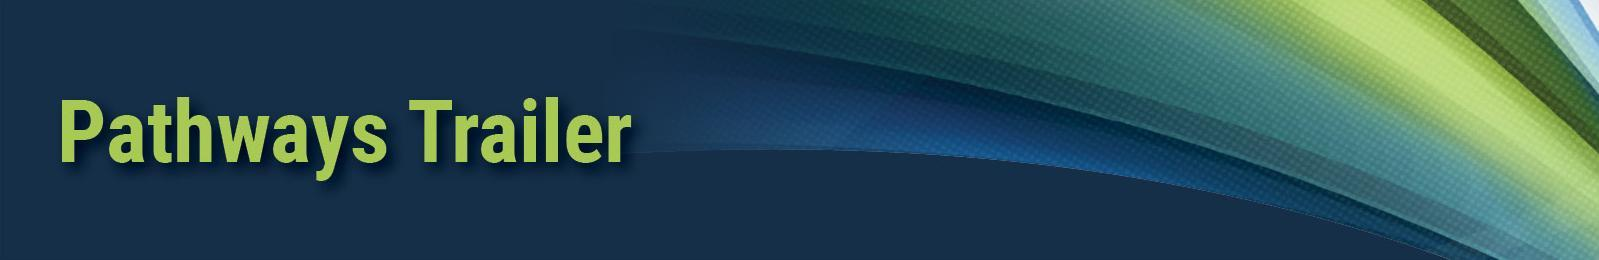 Banner image with swoops of blue and green and text: 'Pathways Trailer'